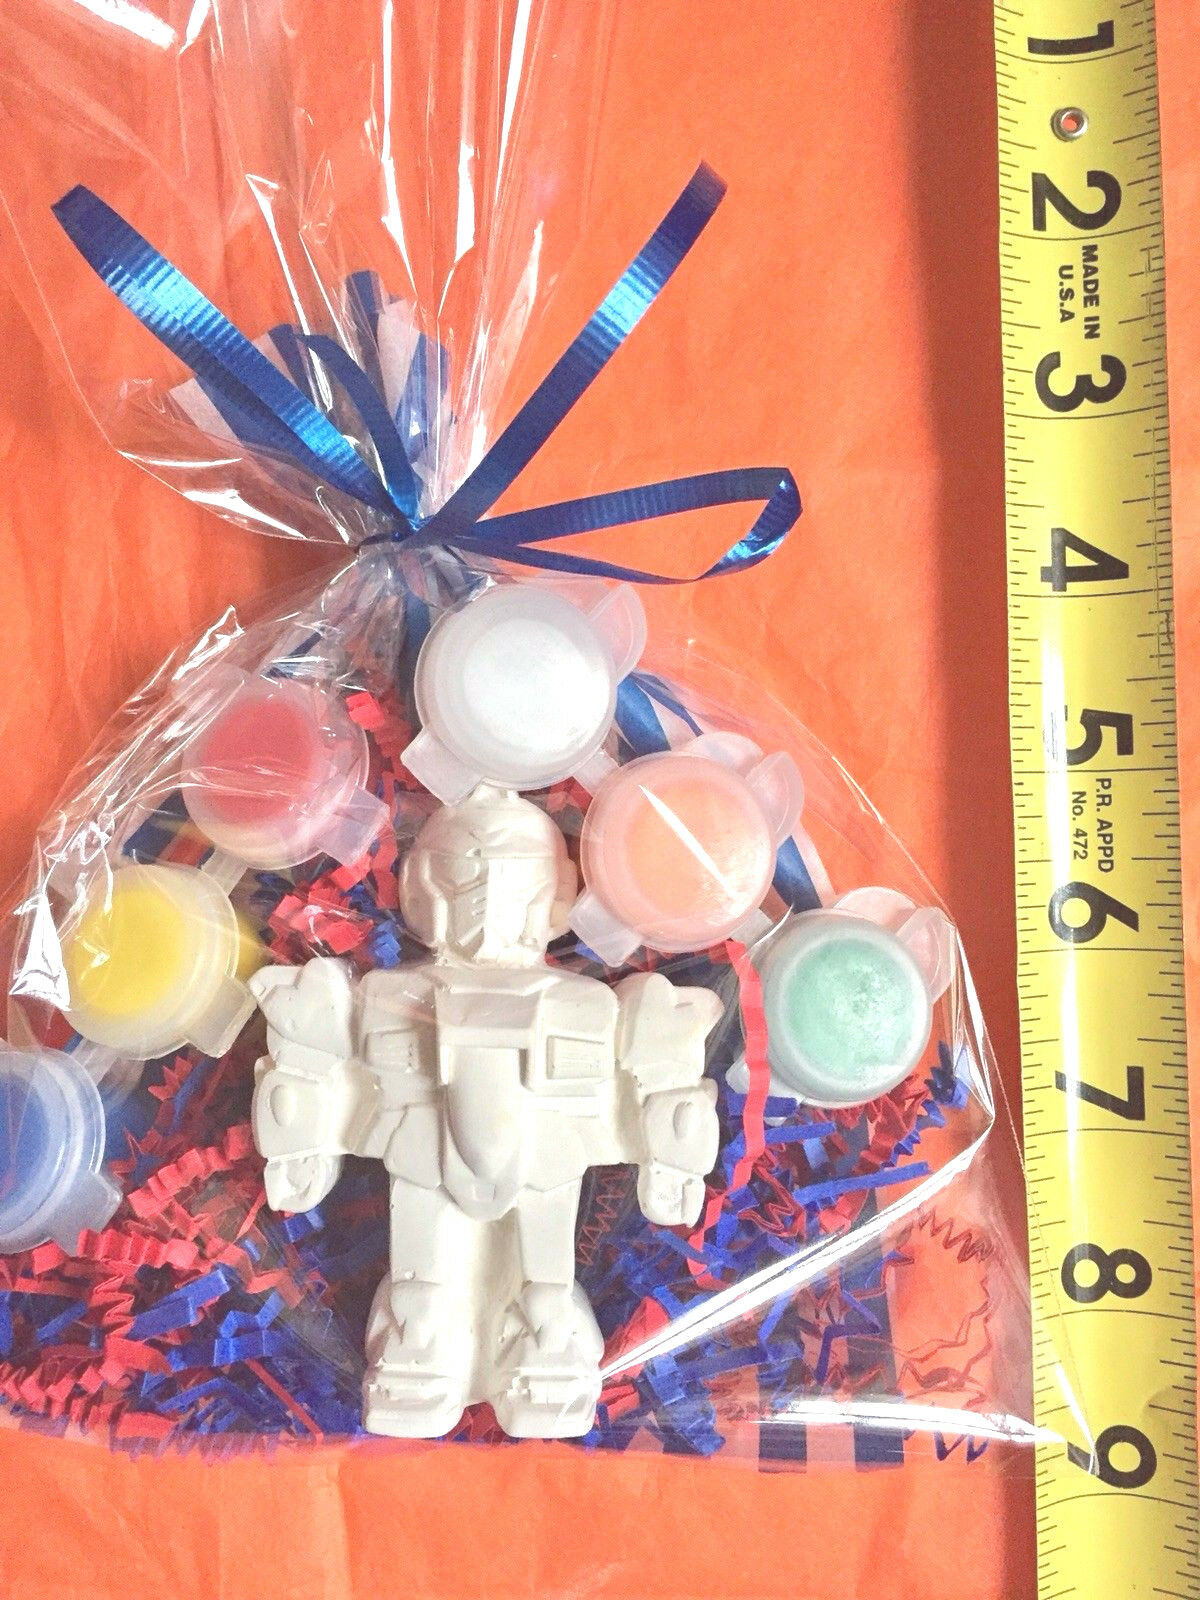 10  Transformer, robot party favors to paint   10 bags  Boys birthday.Creative.